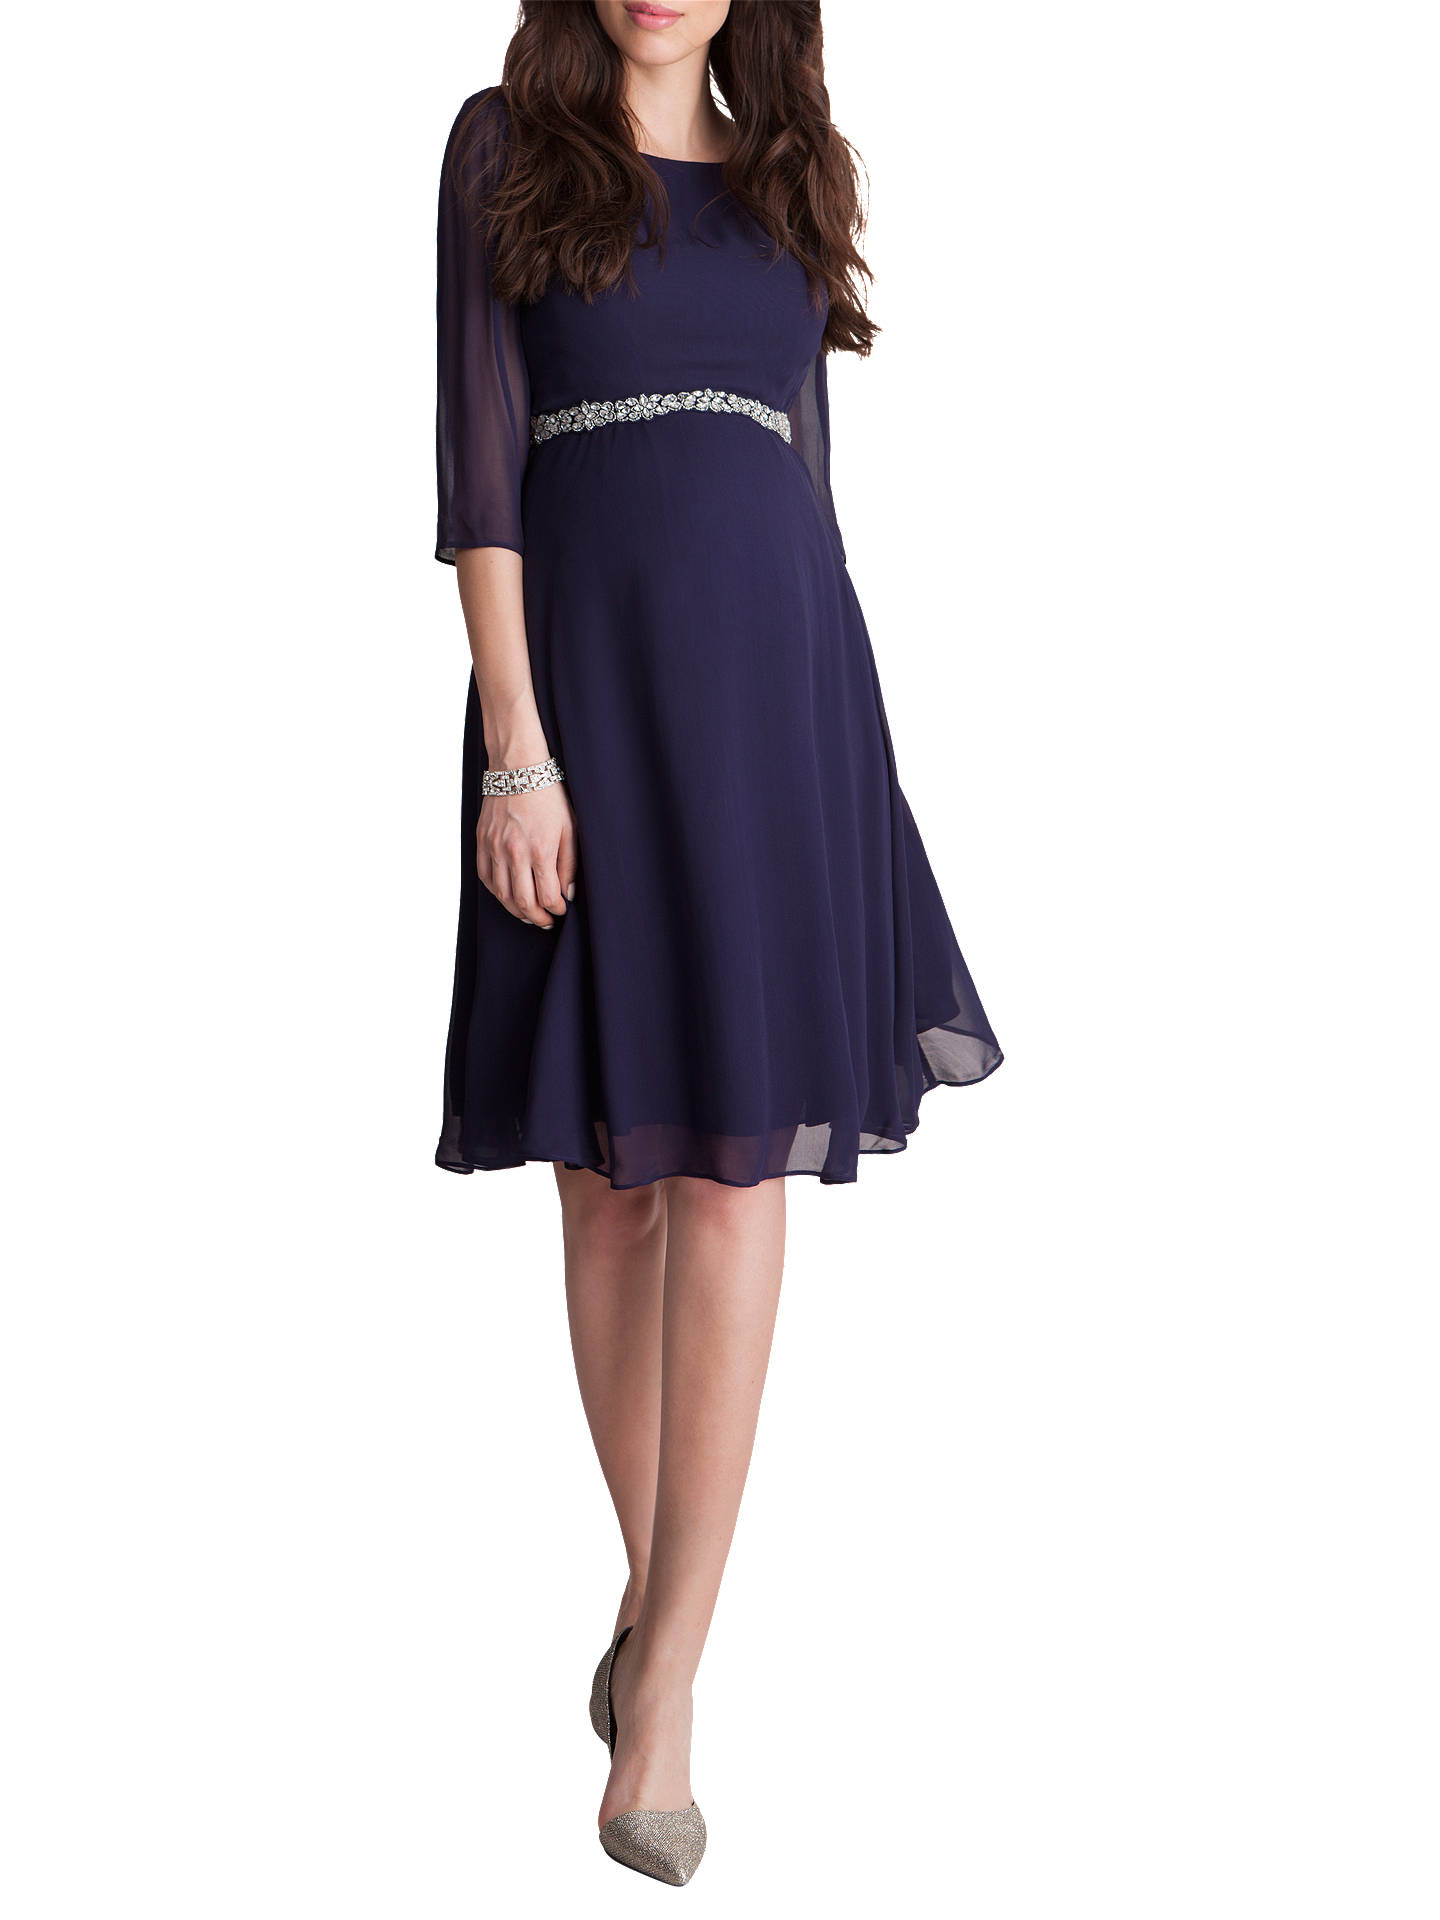 1bce71d108b Buy Séraphine Luxe Giselle Maternity Dress